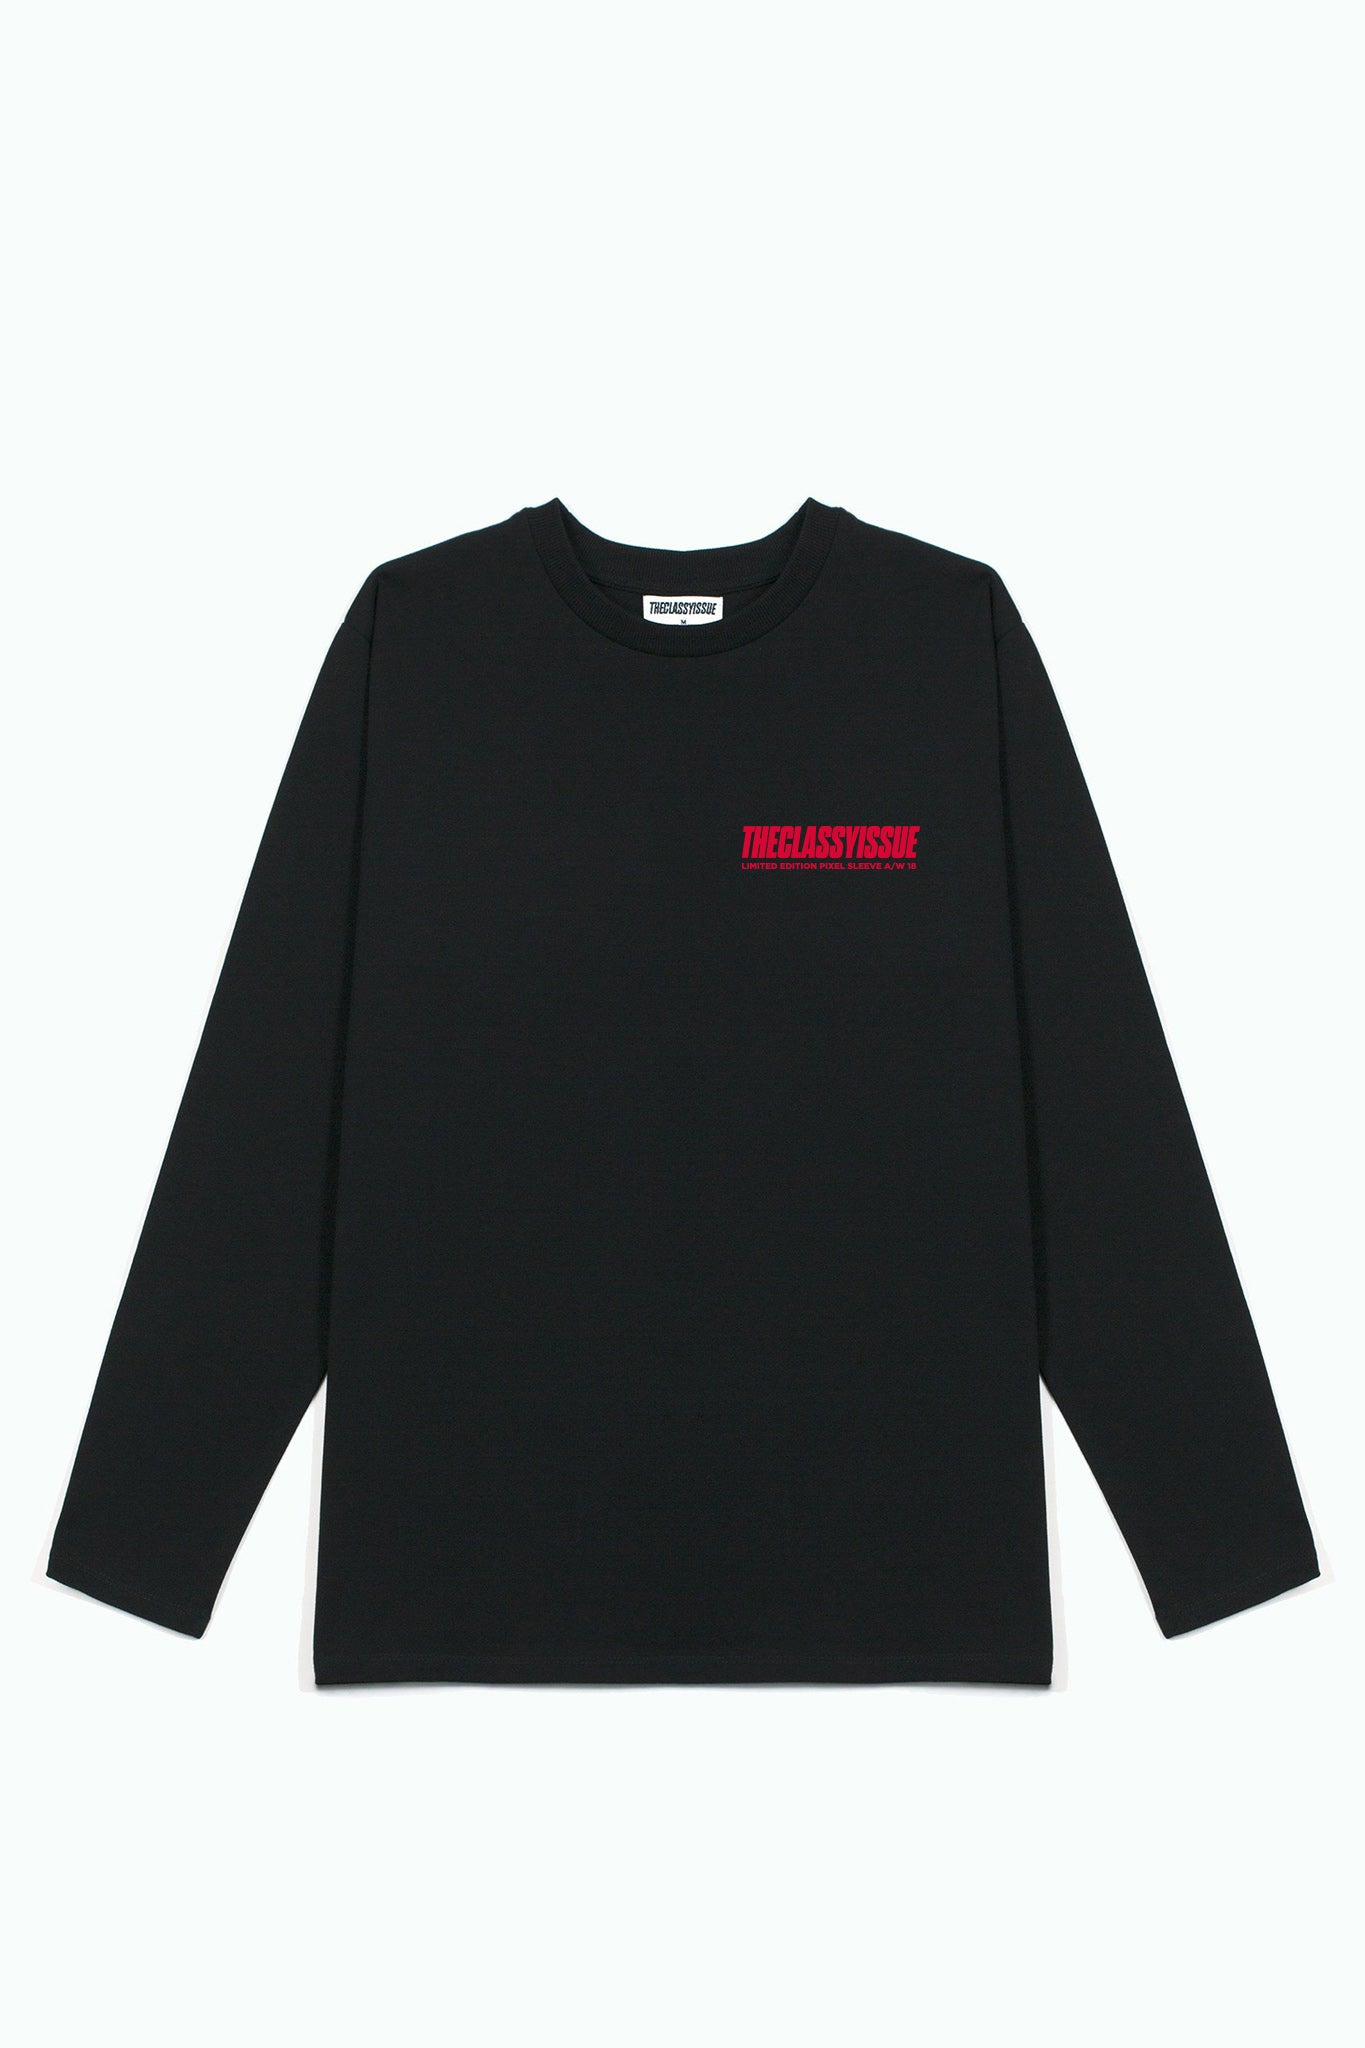 All night longsleeve